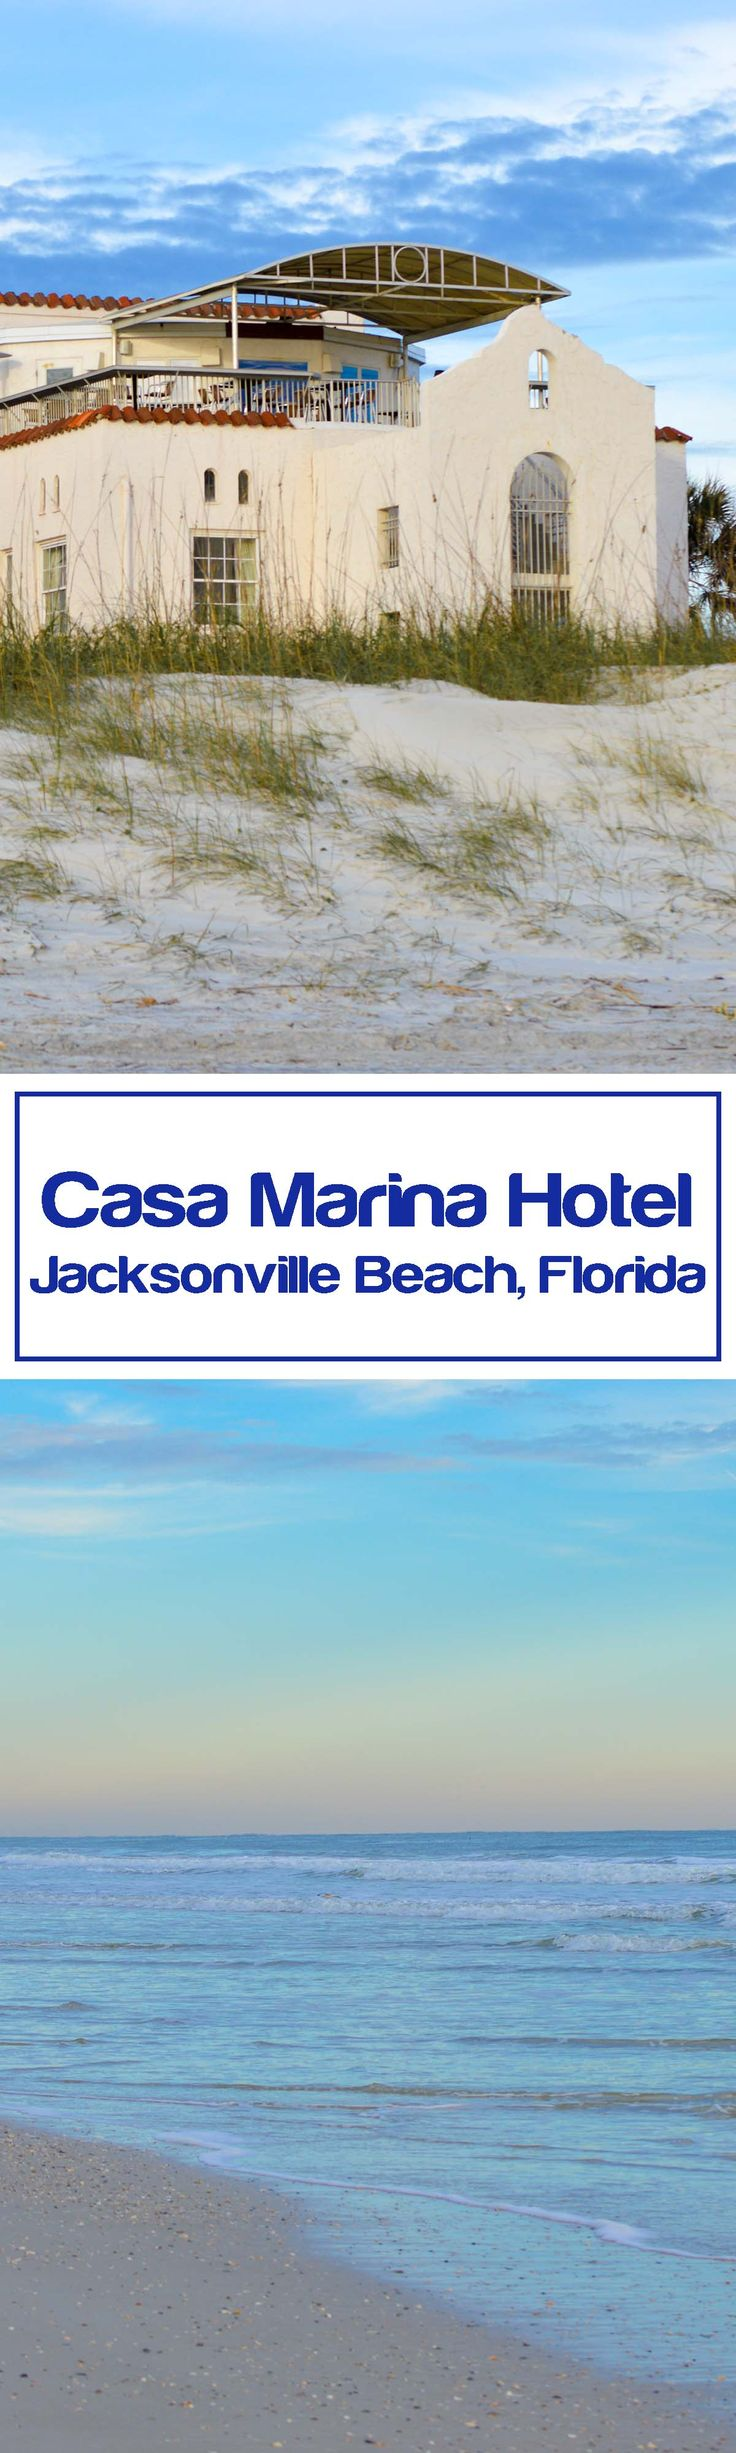 Hotel Review - Casa Marina Hotel in Jacksonville Beach, Florida. A stay at historic Casa Marina Hotel is not your typical beach hotel stay. You'll be charmed by the stories that live within the old walls and may even hear the voice of one of its famous guest whisper in your ears.